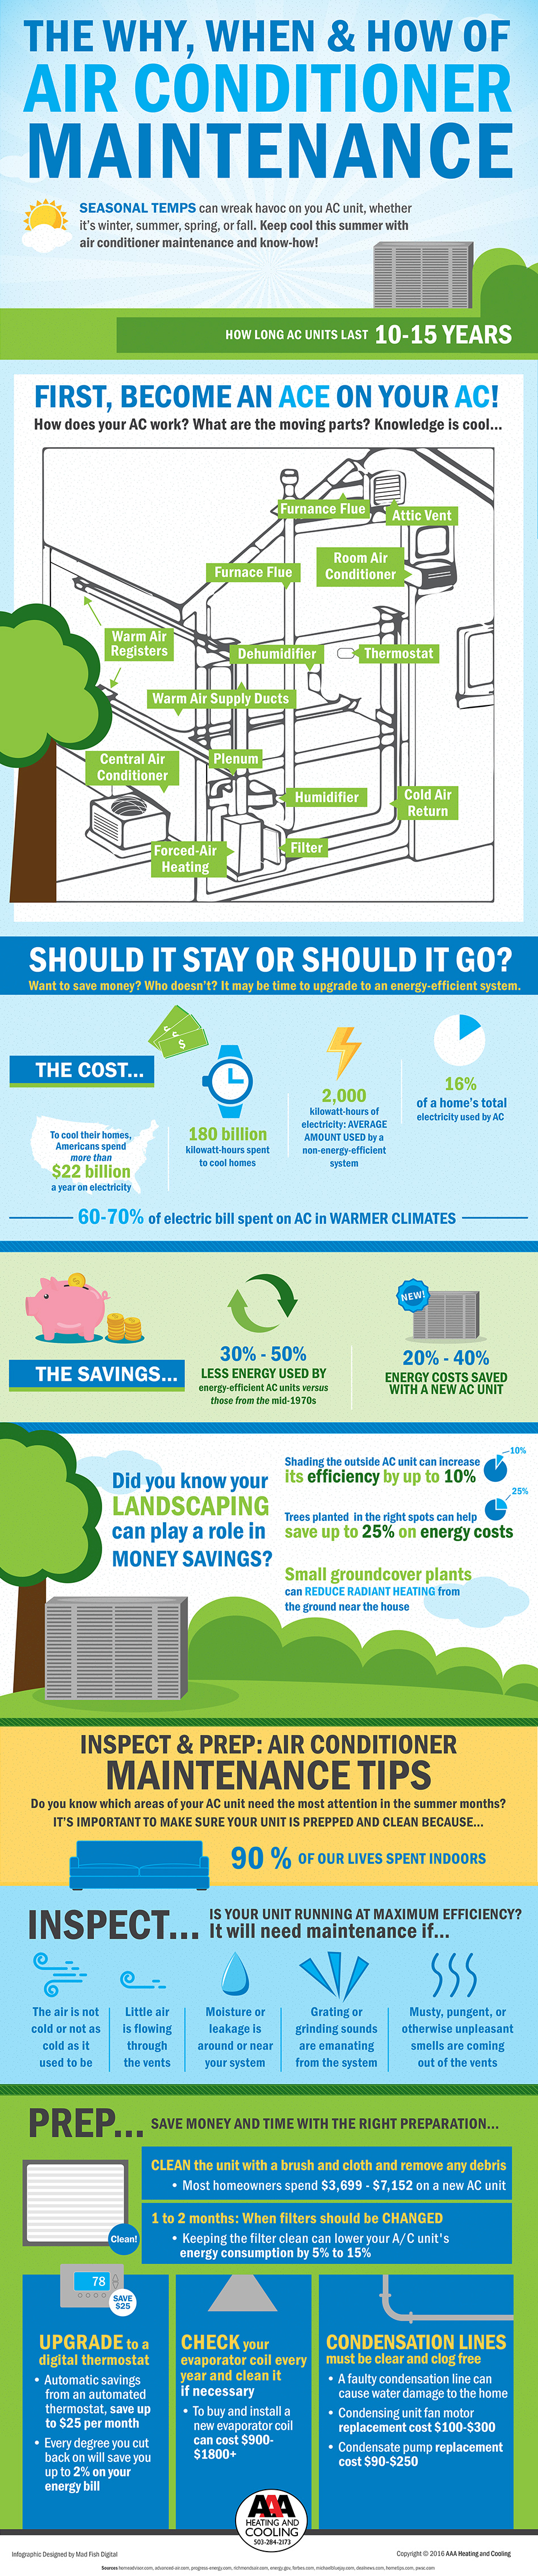 AAA_Air Conditioning Preparation_Infographic